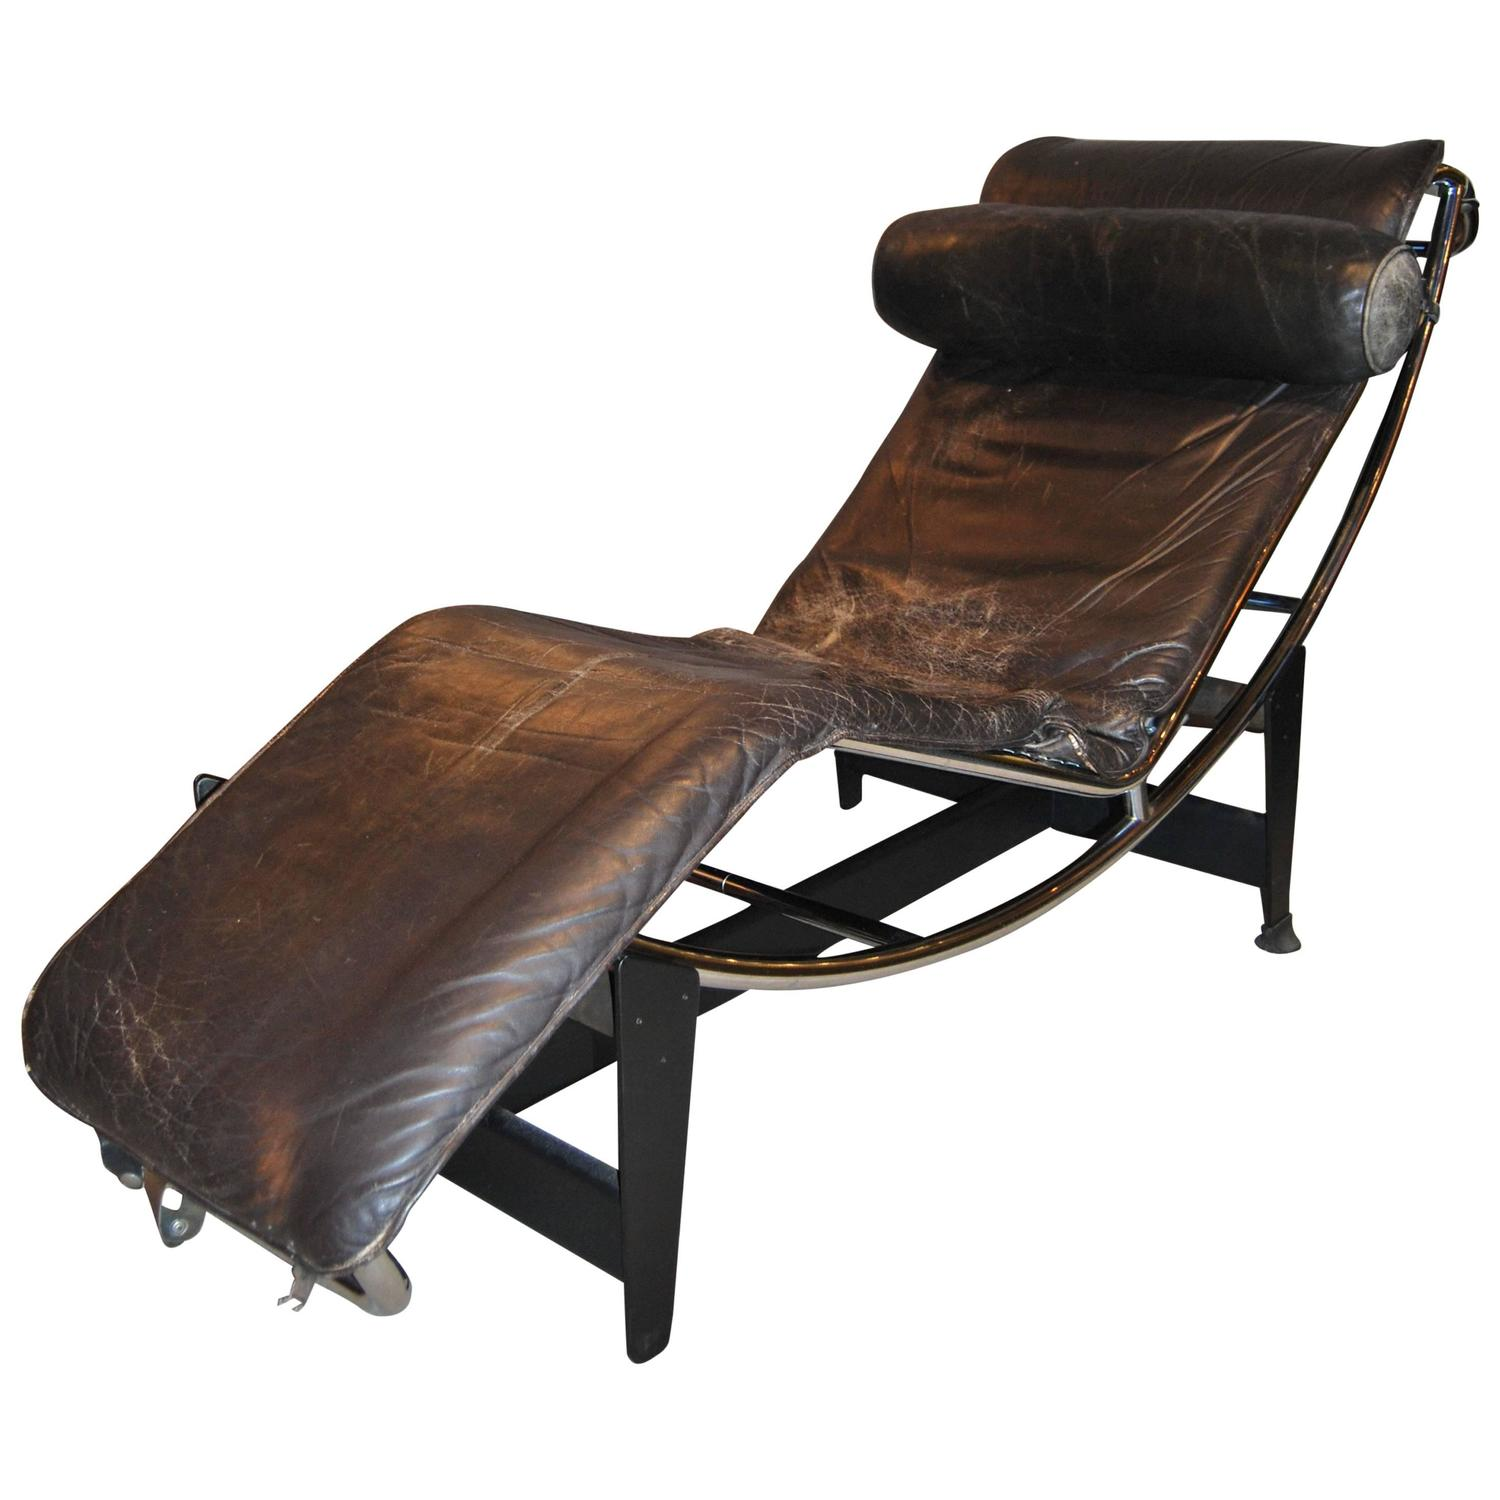 Le corbusier chair vintage - Early Le Corbusier Jeanneret Perriand Lc4 Chaise Lounge For Sale At 1stdibs